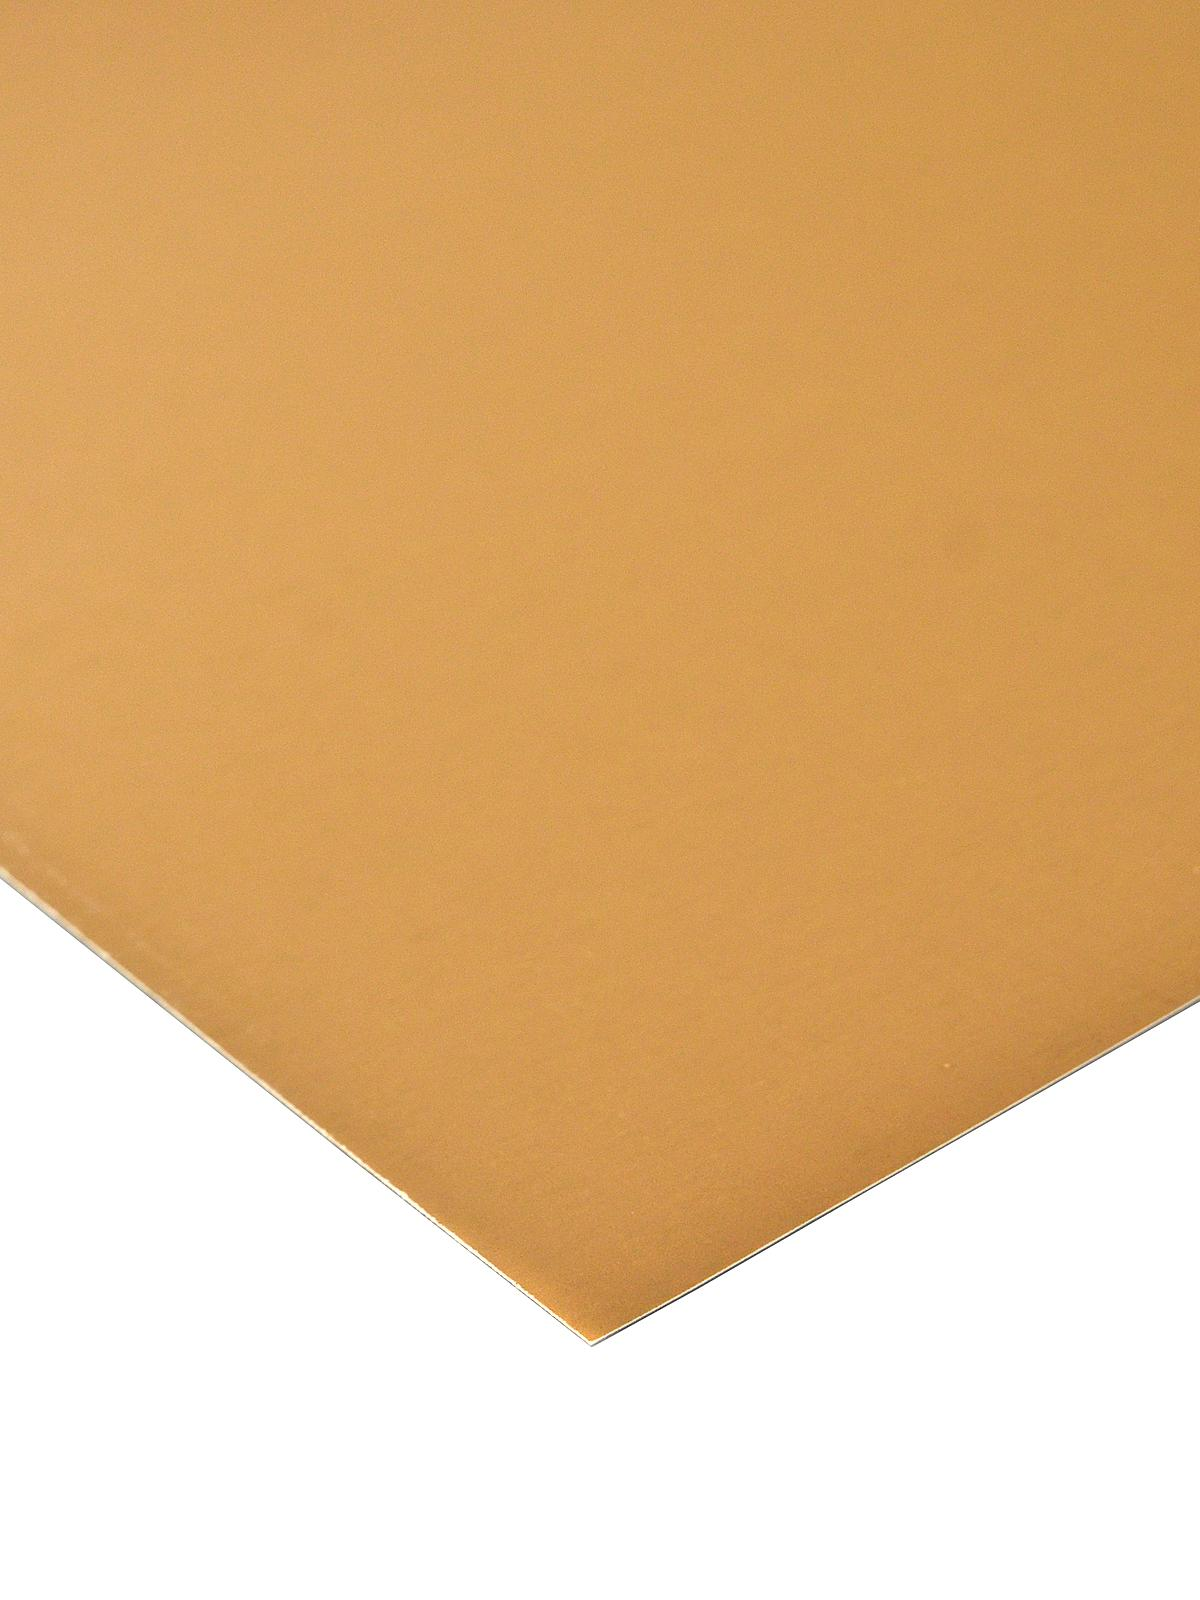 the heavy poster board brown pack of 25